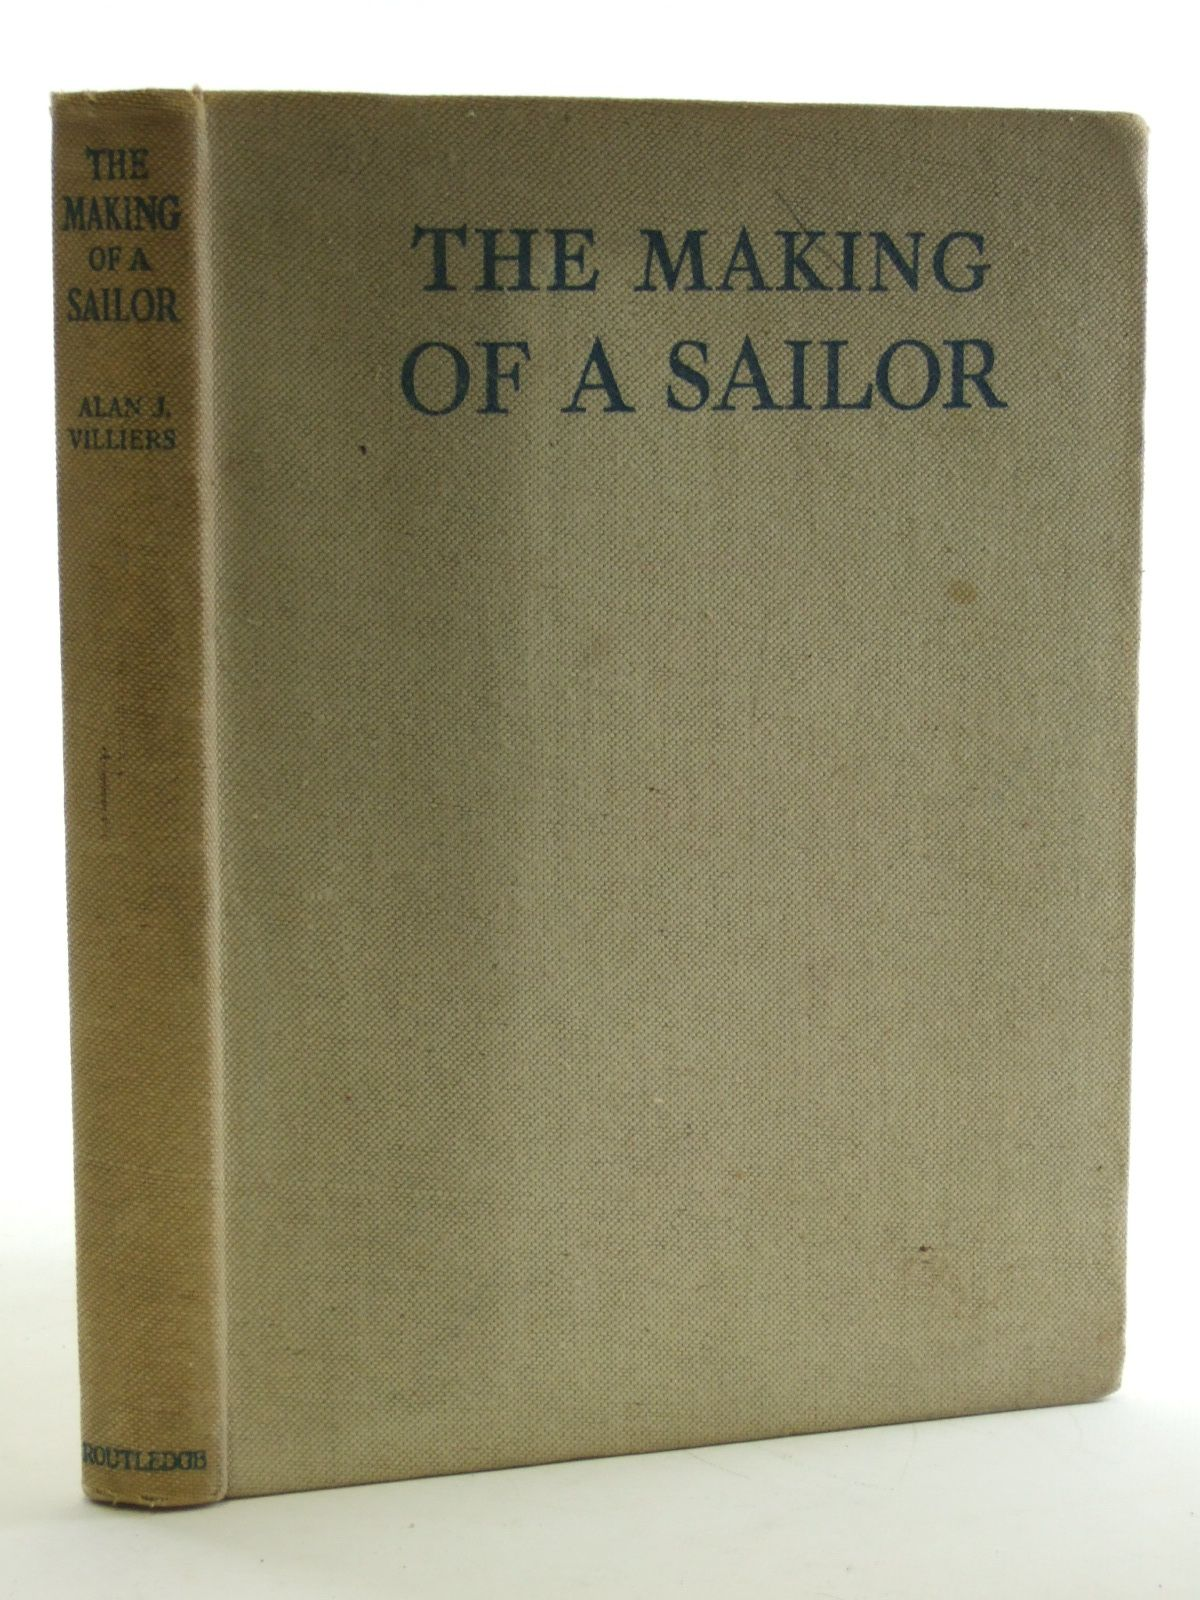 Photo of THE MAKING OF A SAILOR written by Villiers, Alan J. published by George Routledge & Sons Ltd. (STOCK CODE: 1603447)  for sale by Stella & Rose's Books